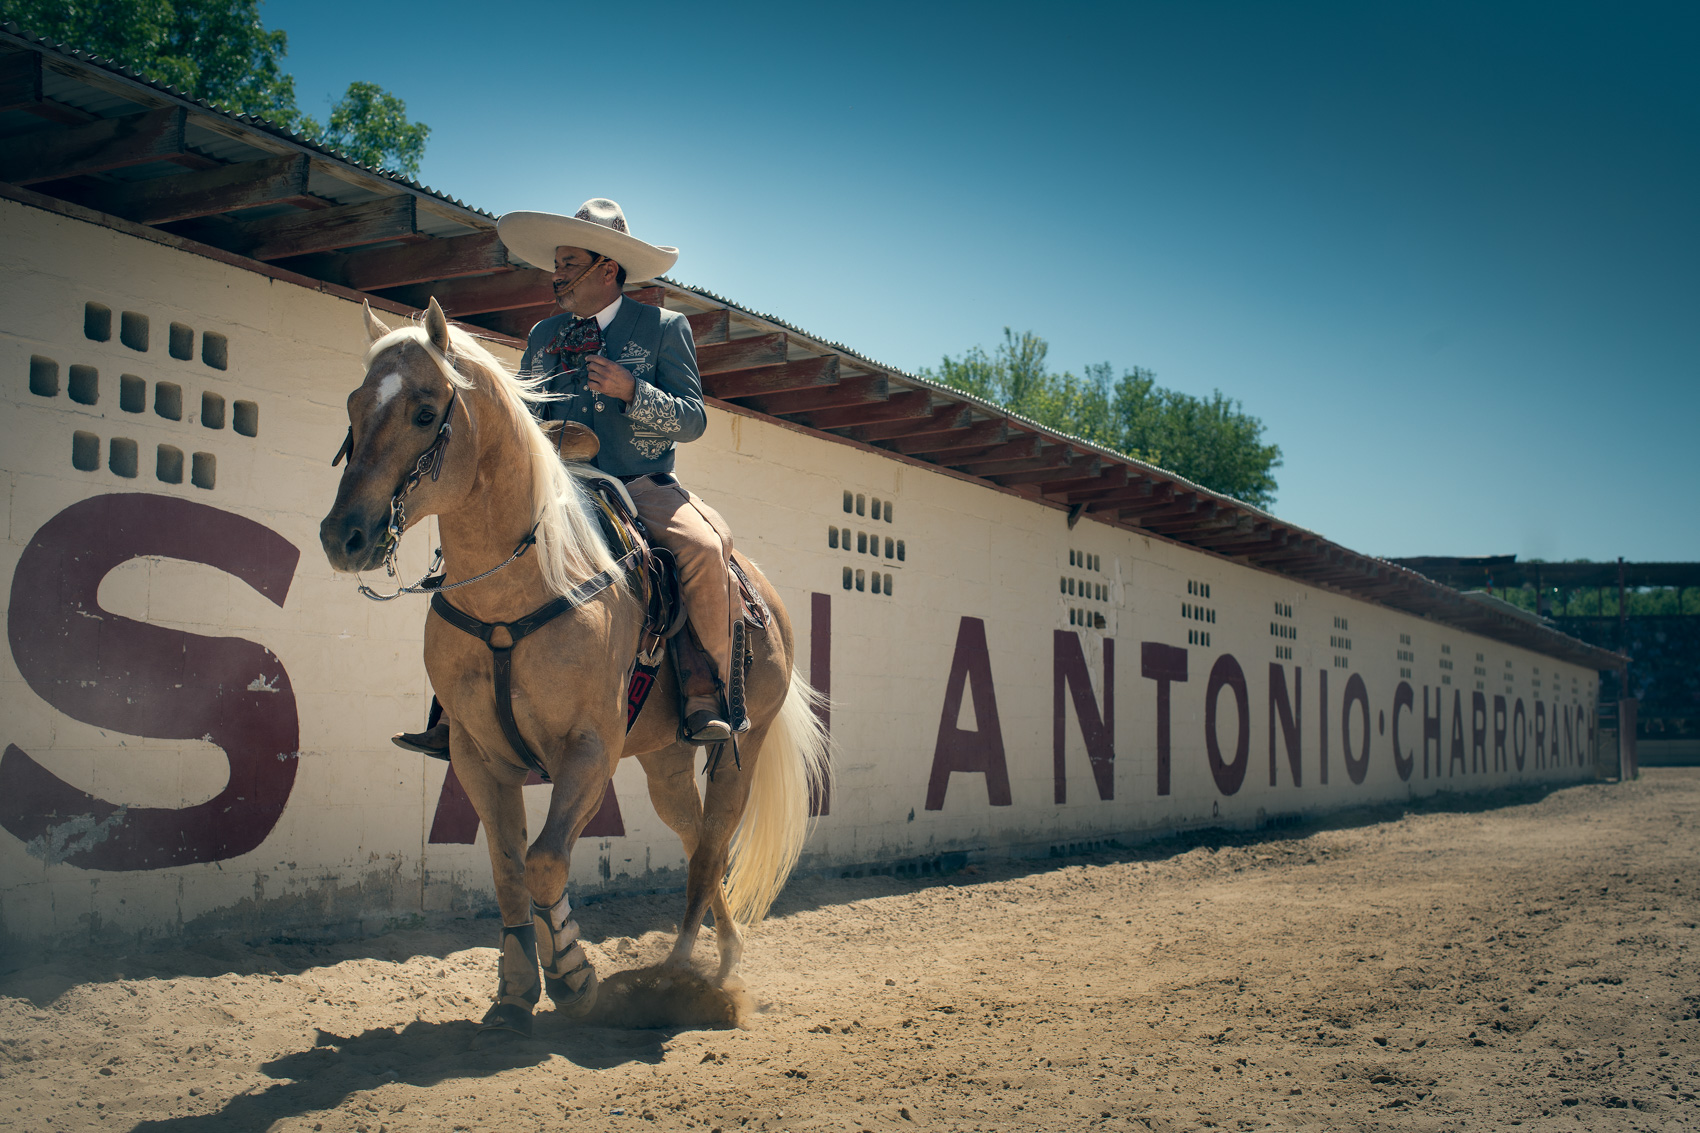 jason-risner-photography-san-antonio-charreada-8-a